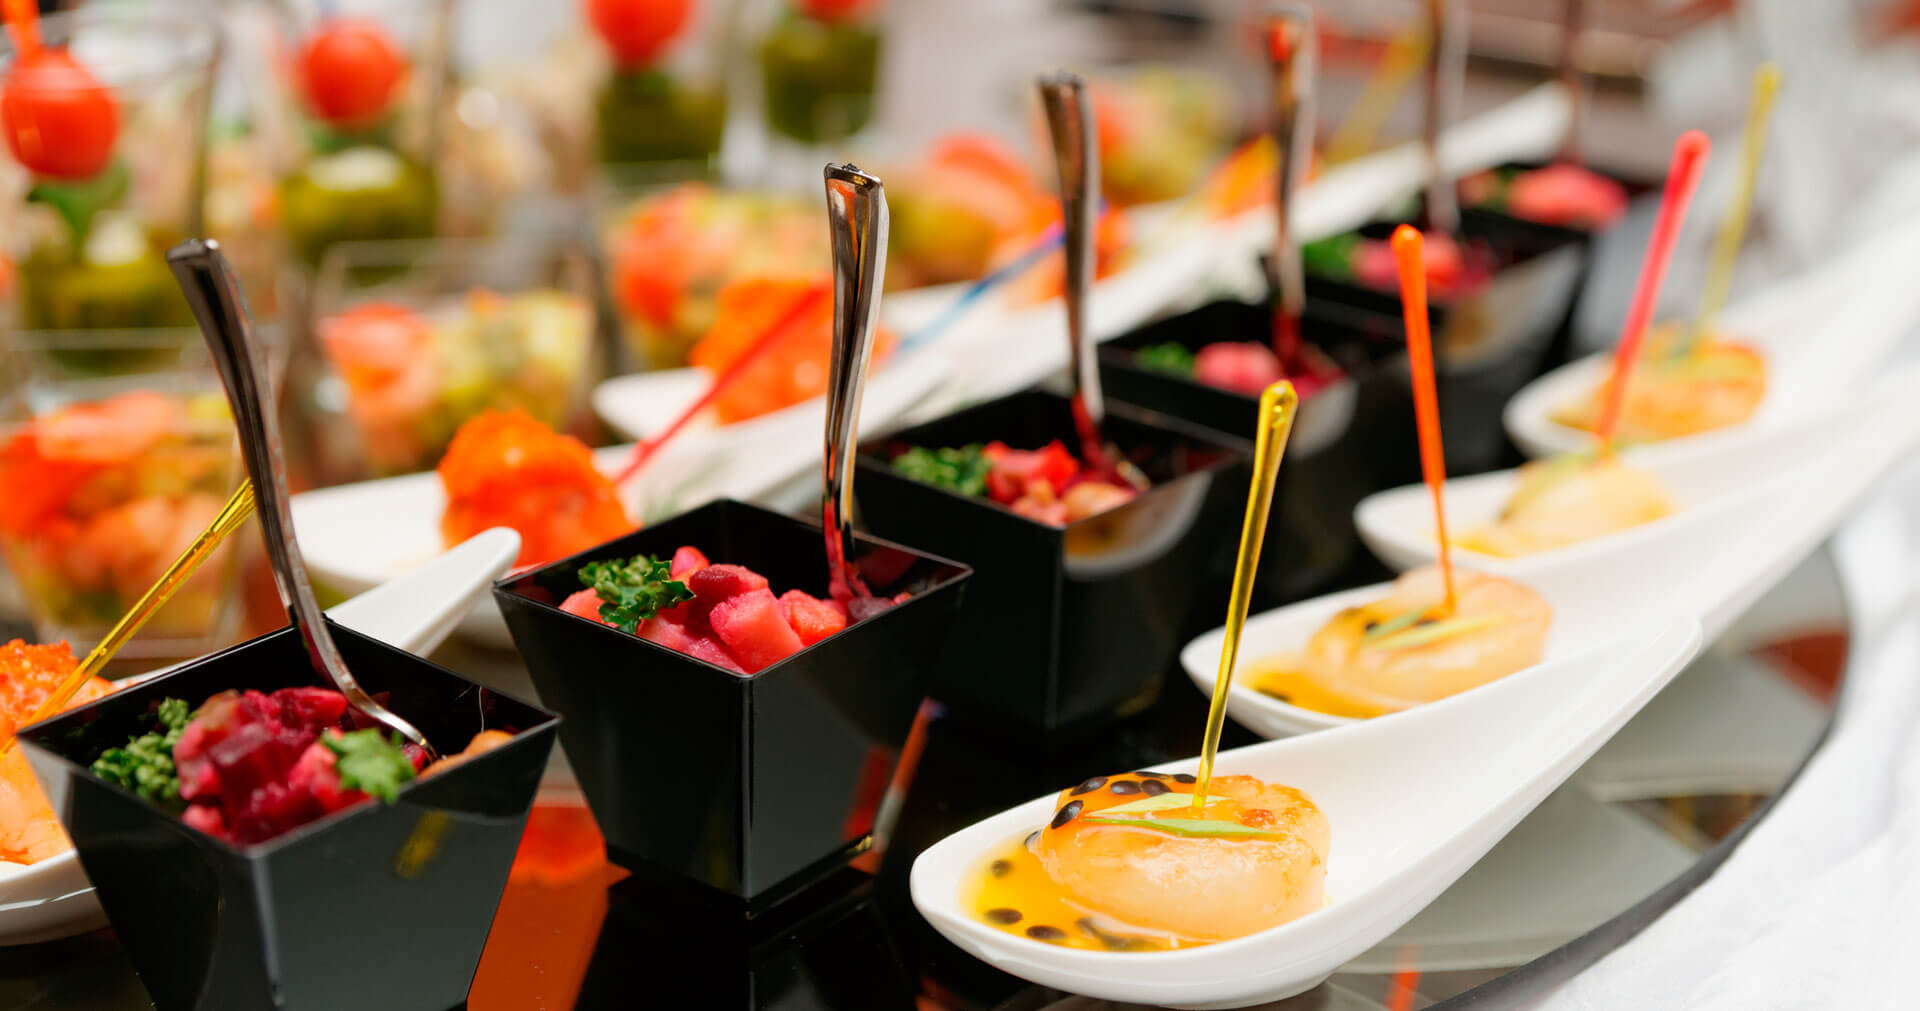 Catered food presented enticingly to guests